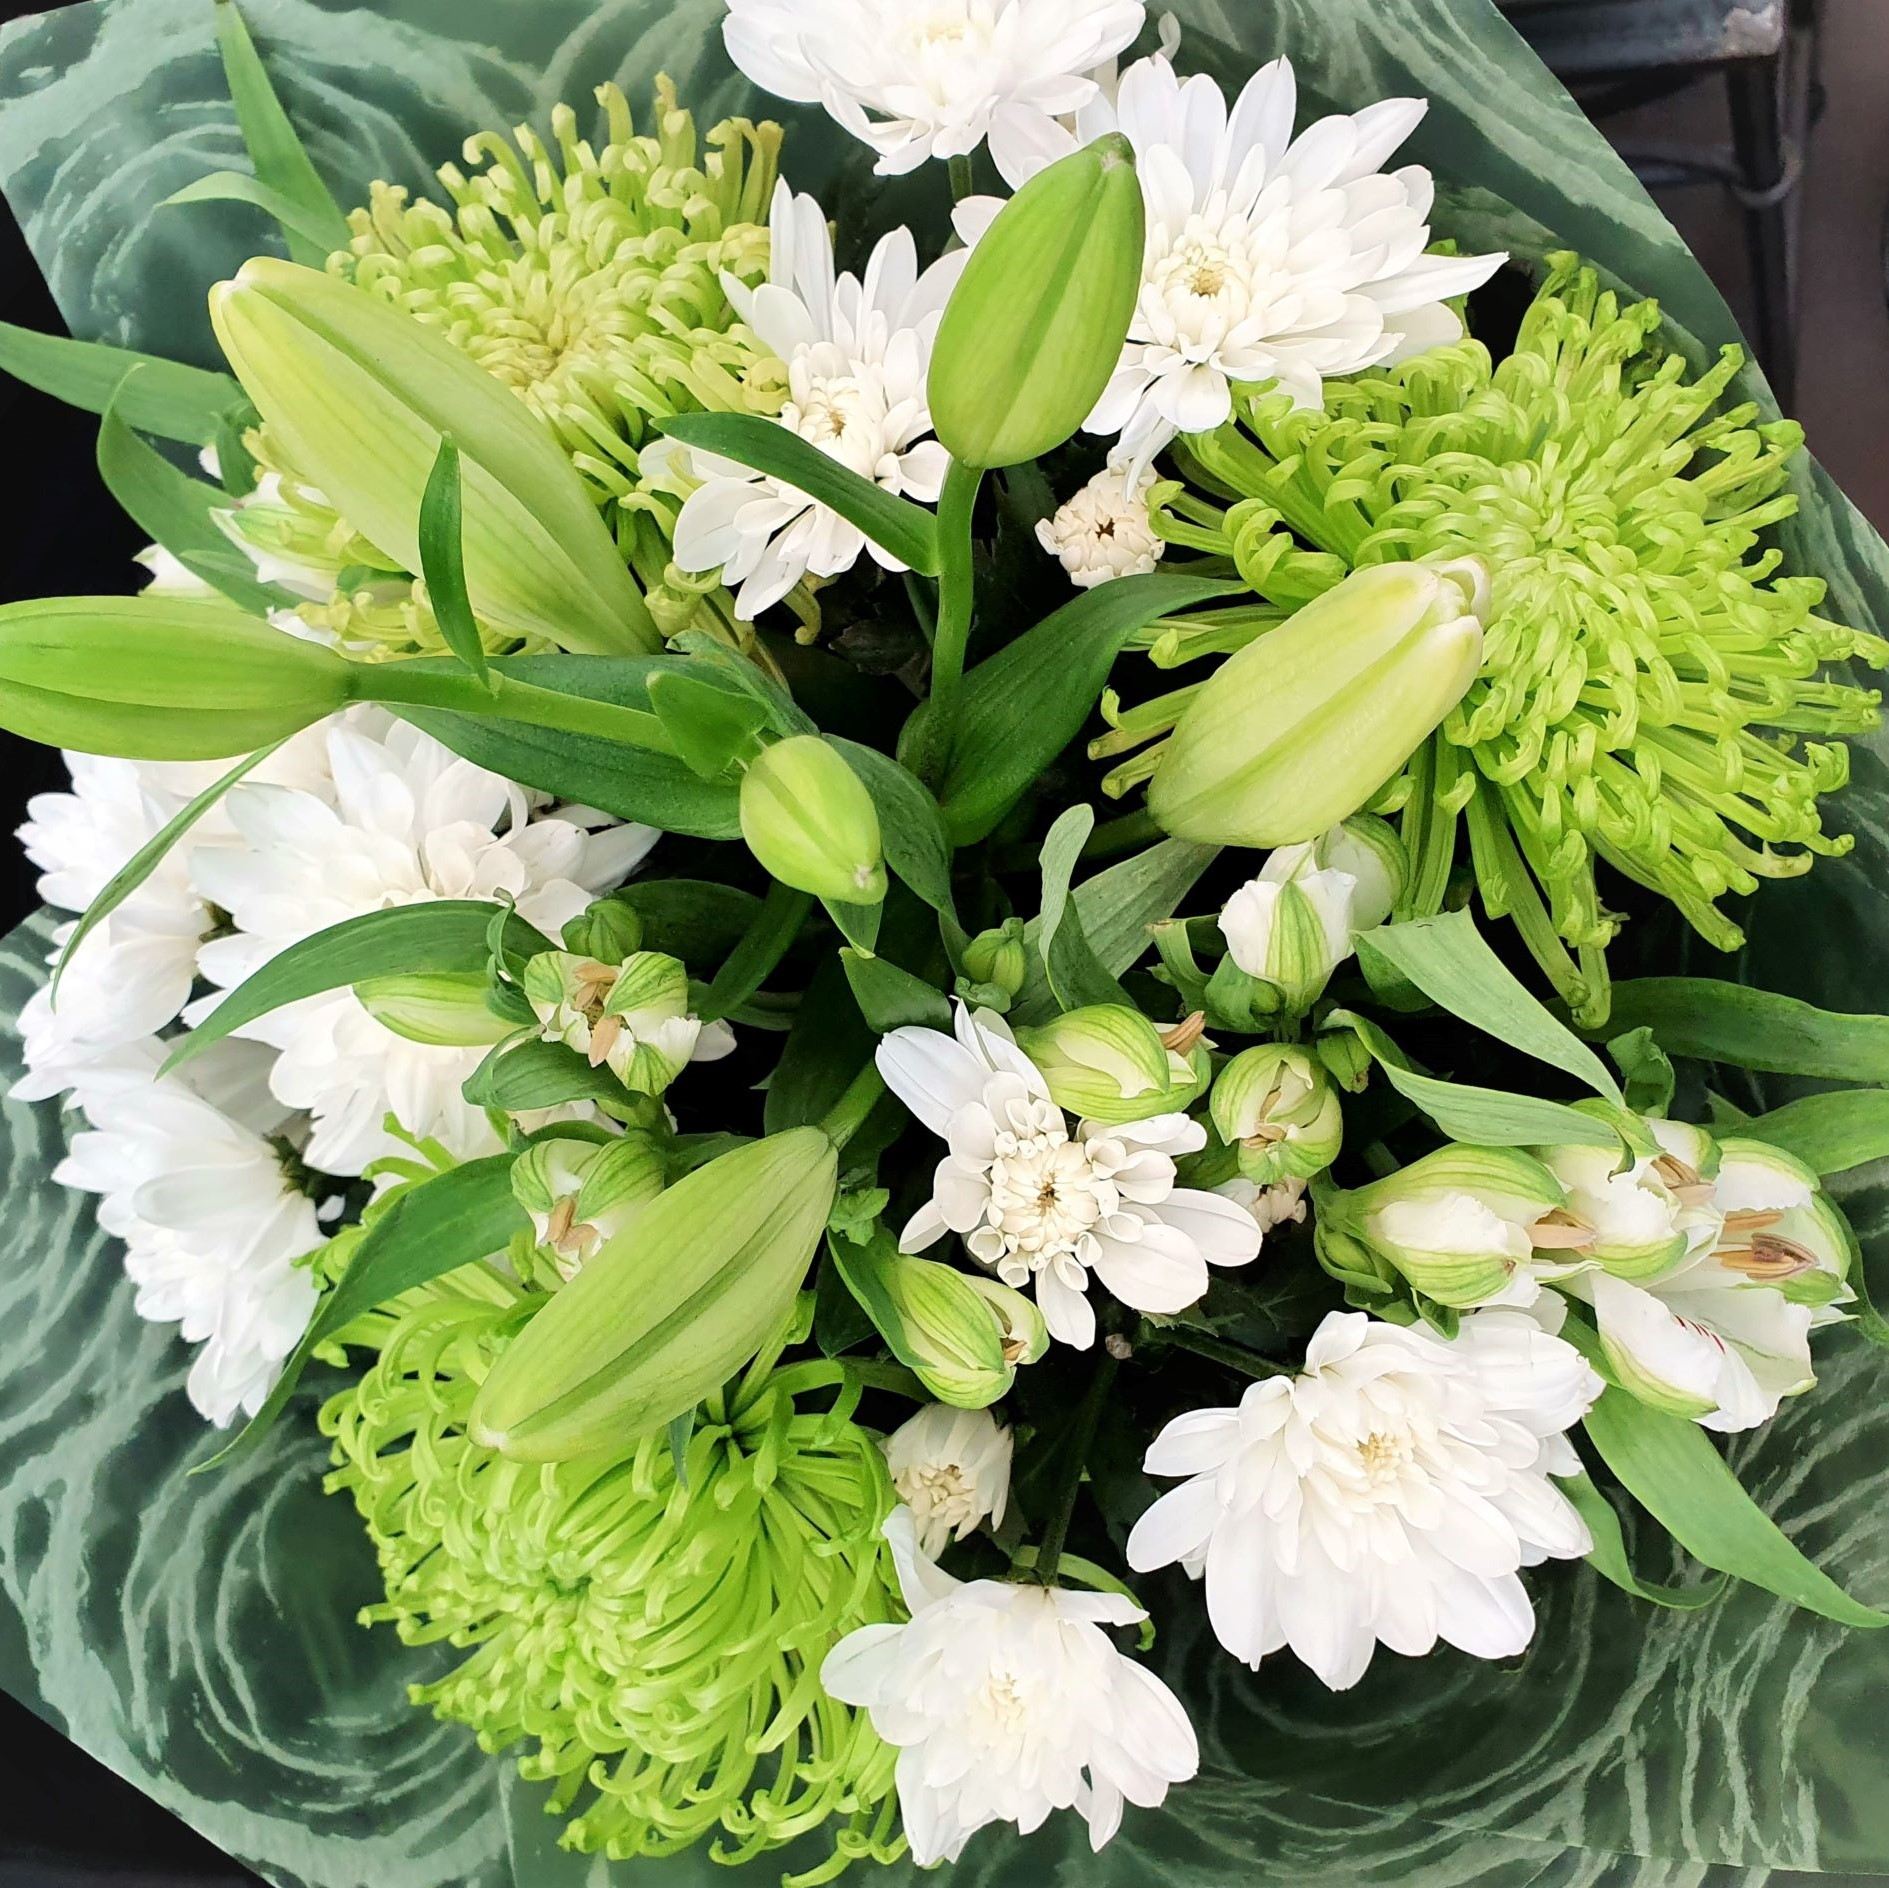 Jade - Bouquet long lasting flowers in green & white tones - choose premium for a larger bouquet - Birthday / Congratulations,Sympathy / Funerals,Any Occasion